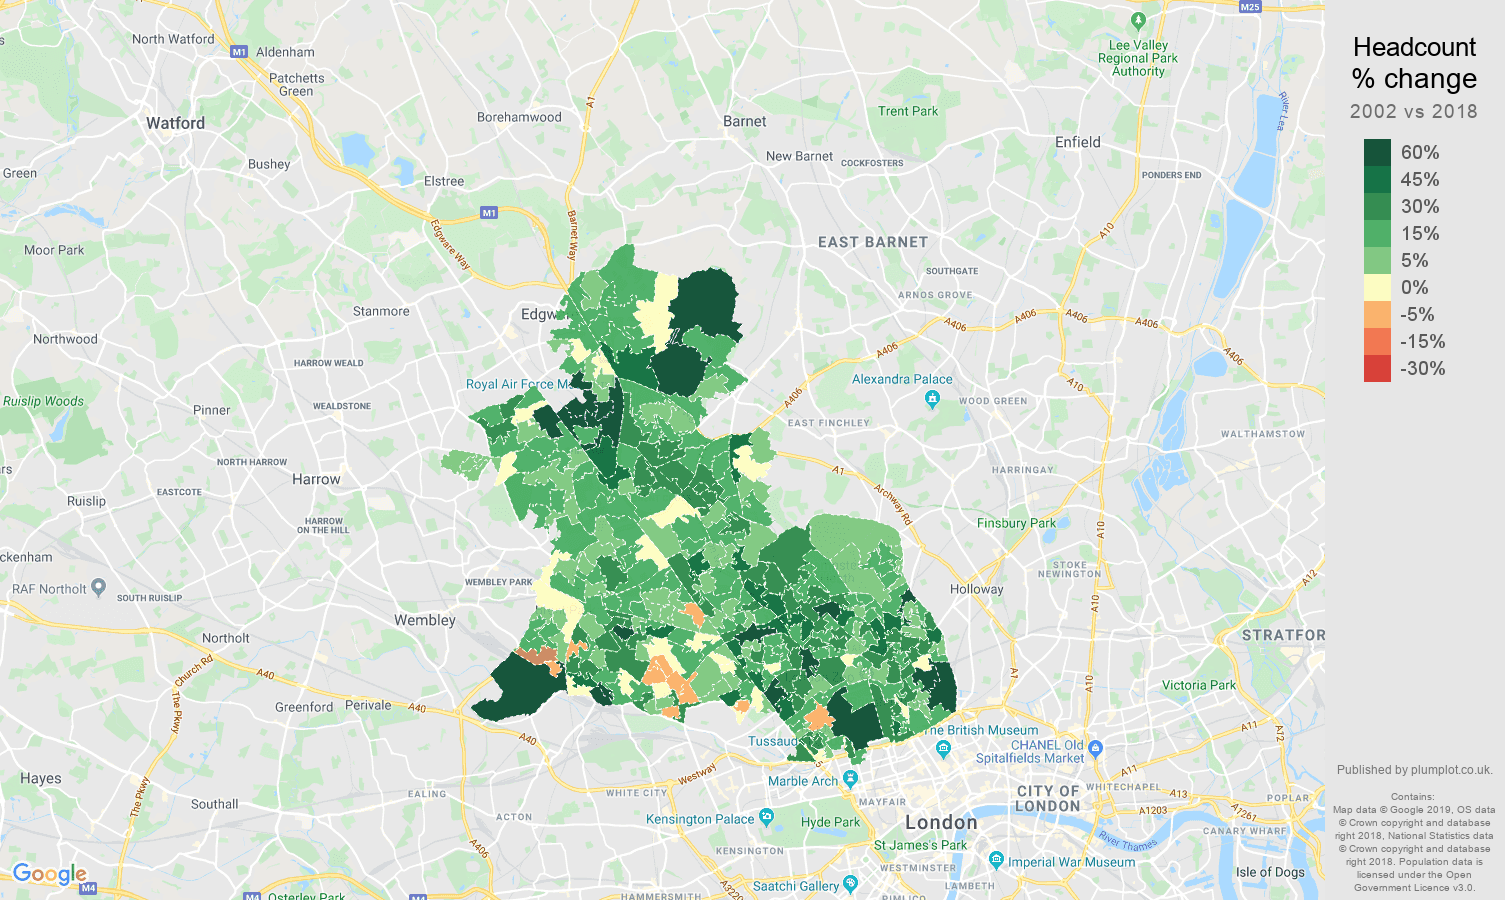 Map North West London.North West London Population Growth Rates